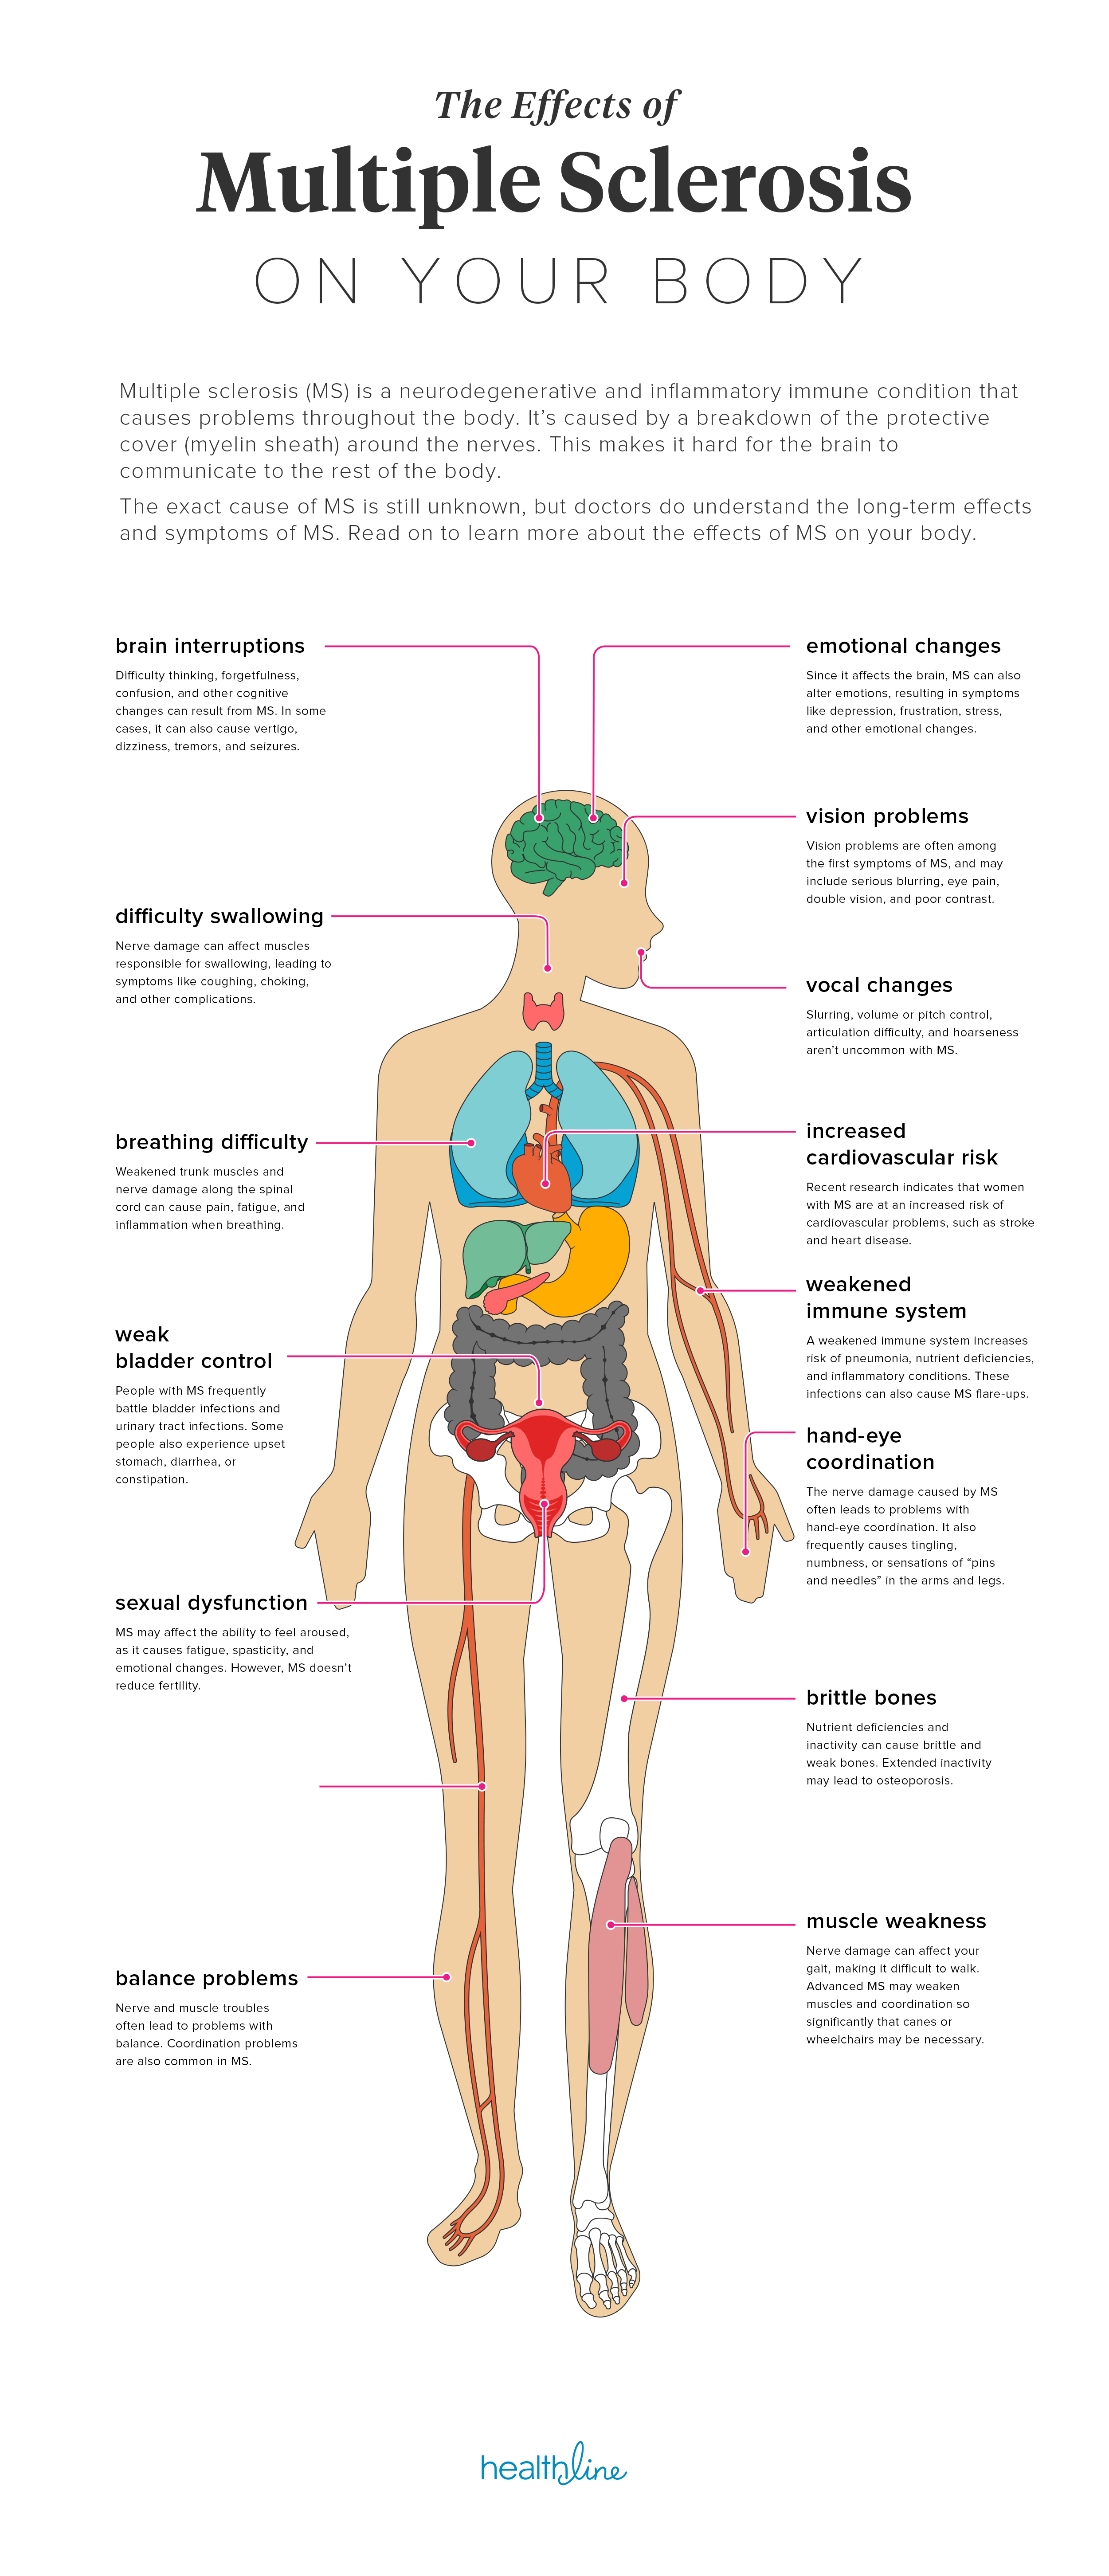 The Effects of Multiple Sclerosis on Your Body